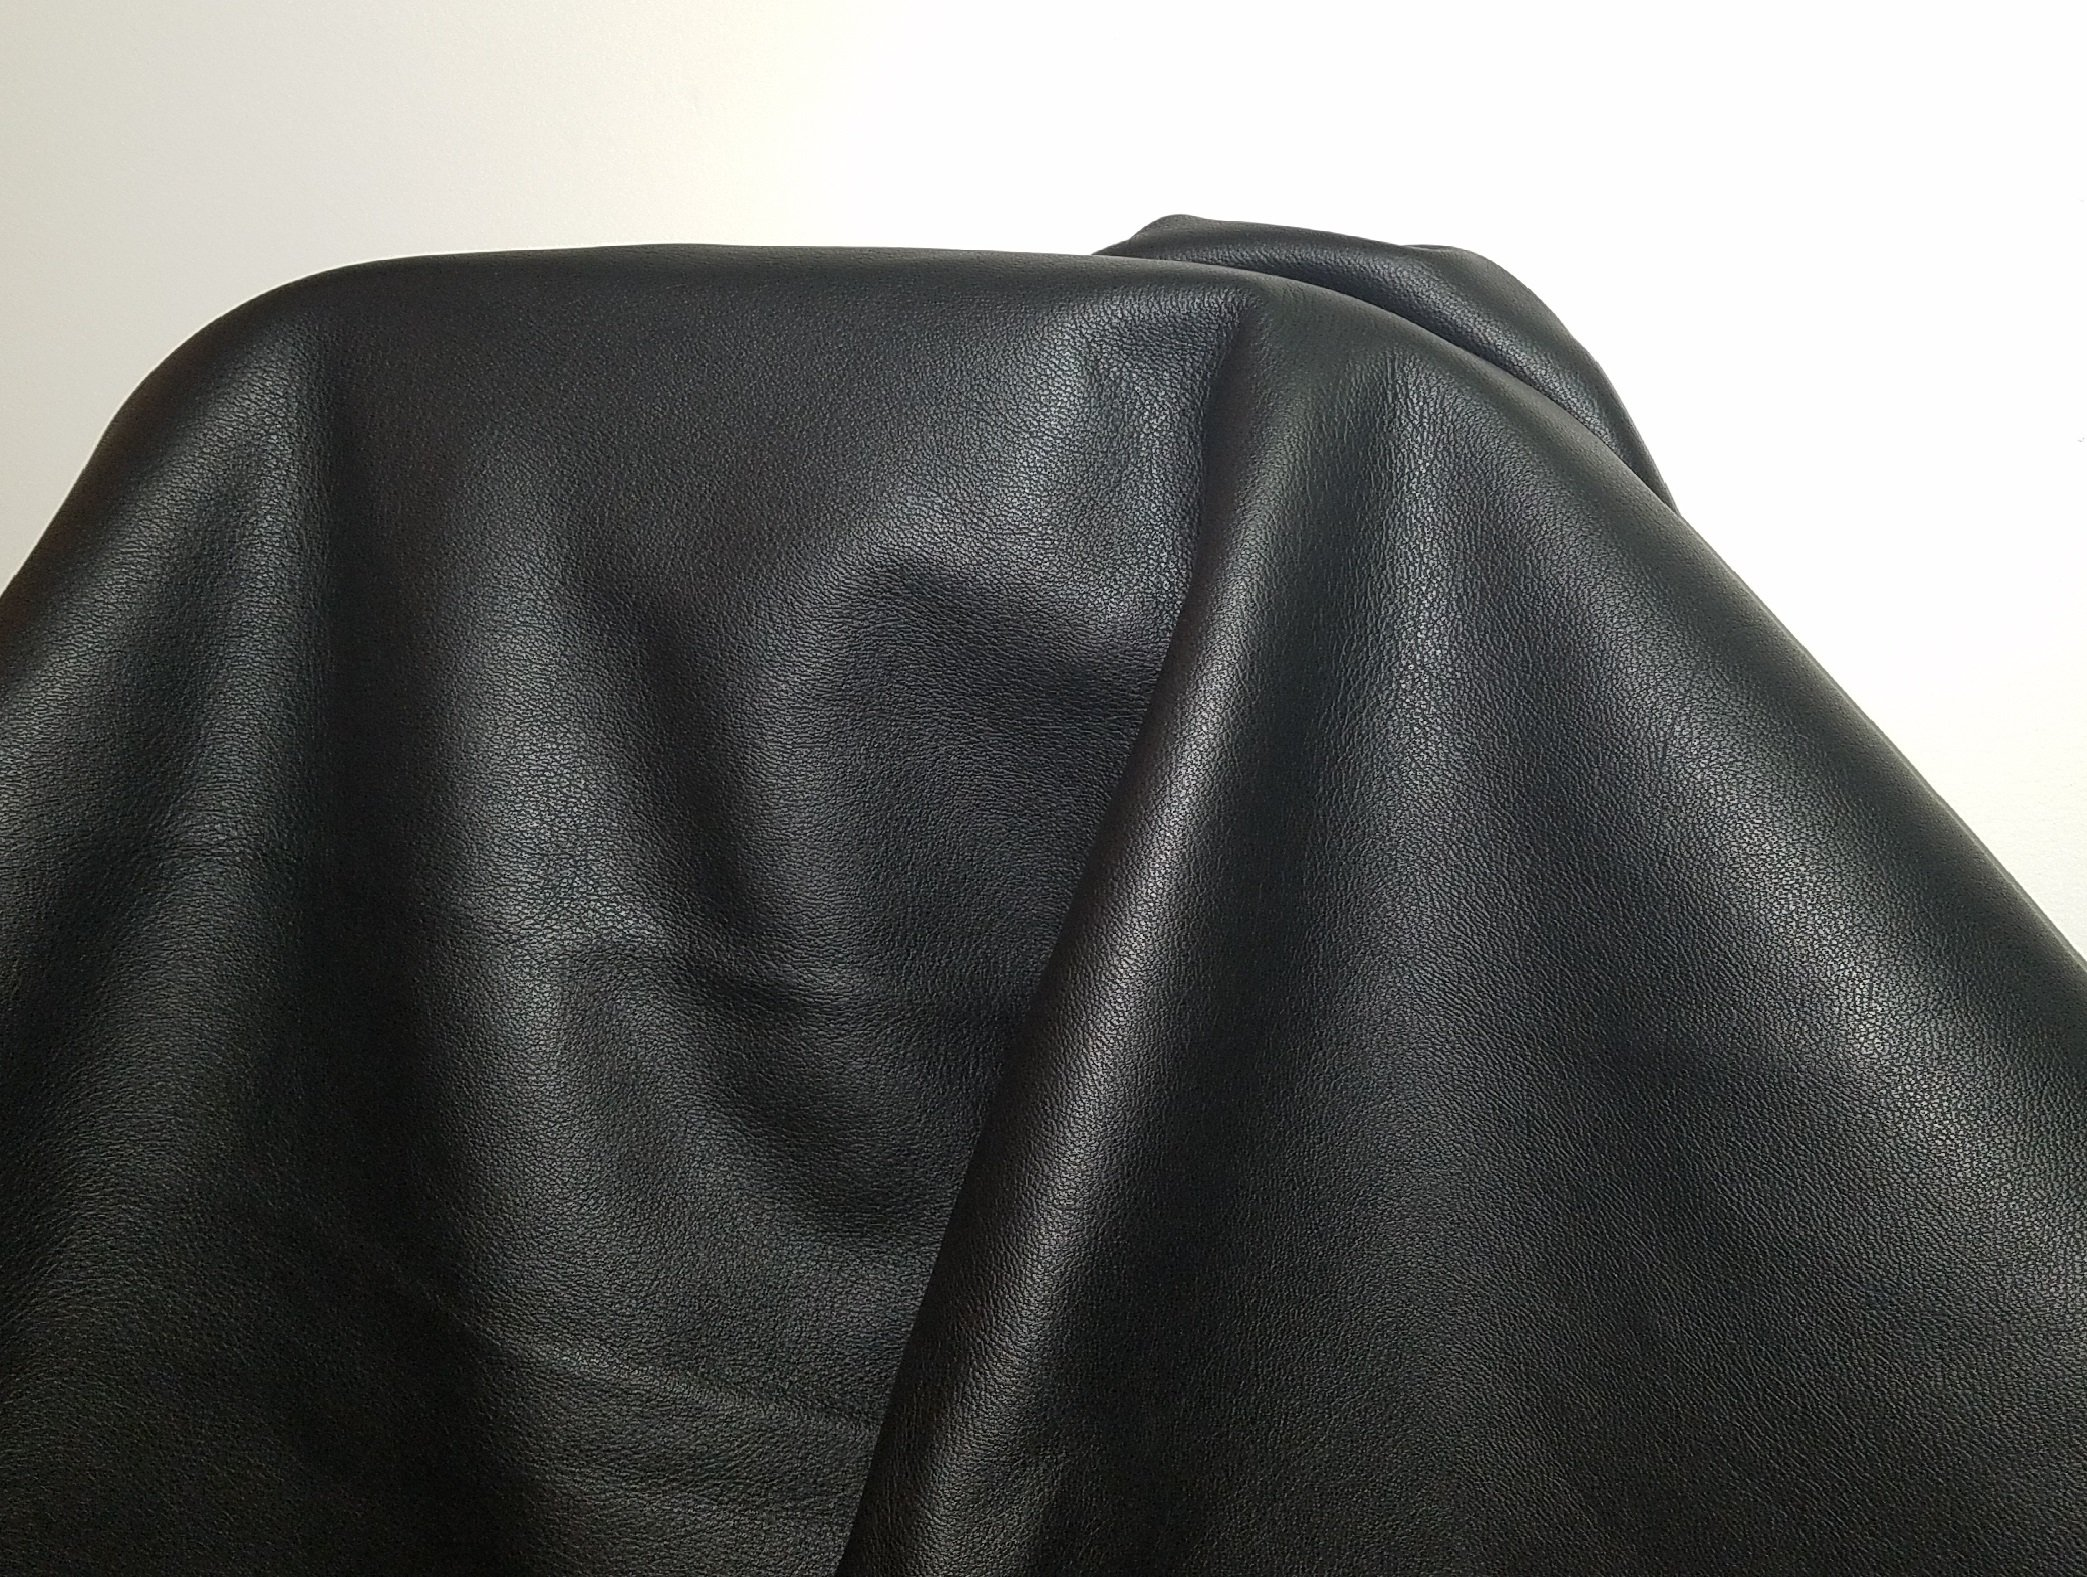 BLACK NAKED GOAT GRAIN COW HIDE LEATHER SKINS 22 SQ.FT. 2.5 -3.0 OZ. UPHOLSTERY BOOKBINDING CHAP NAT Leathers (BLACK)